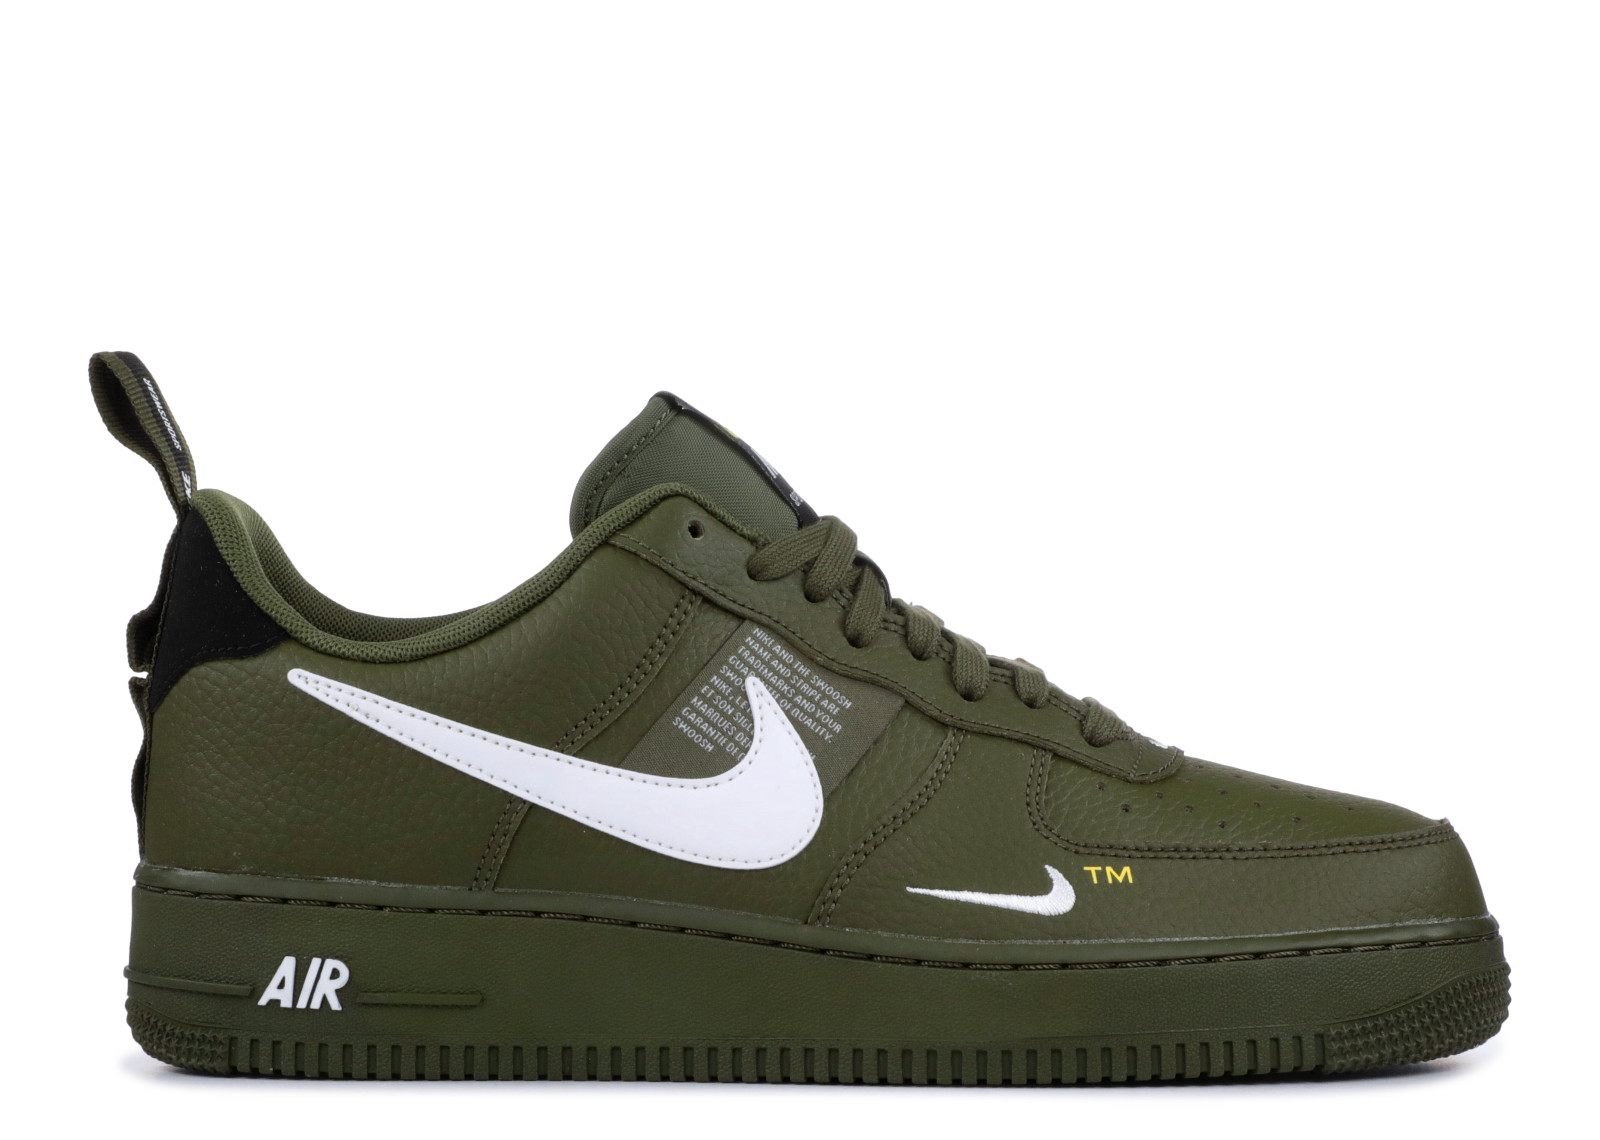 finest selection 6098a 62725 Nike Air Force 1 Low Utility Olive Canvas - 0